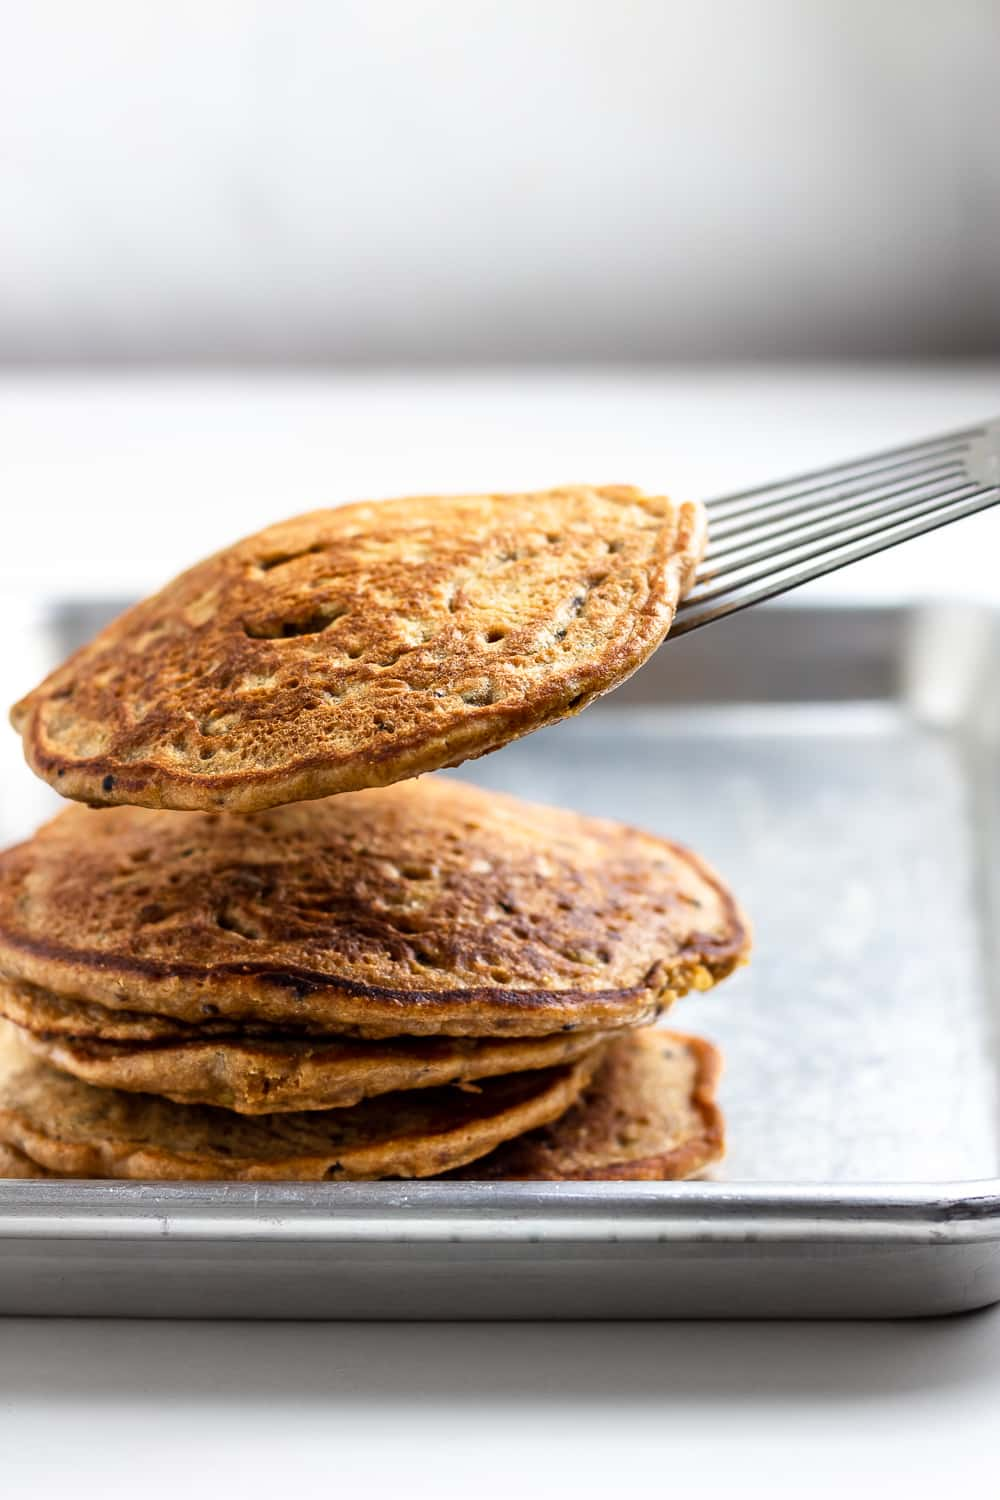 A stack of whole grain pancakes on a rimmed baking sheet with thin spatula